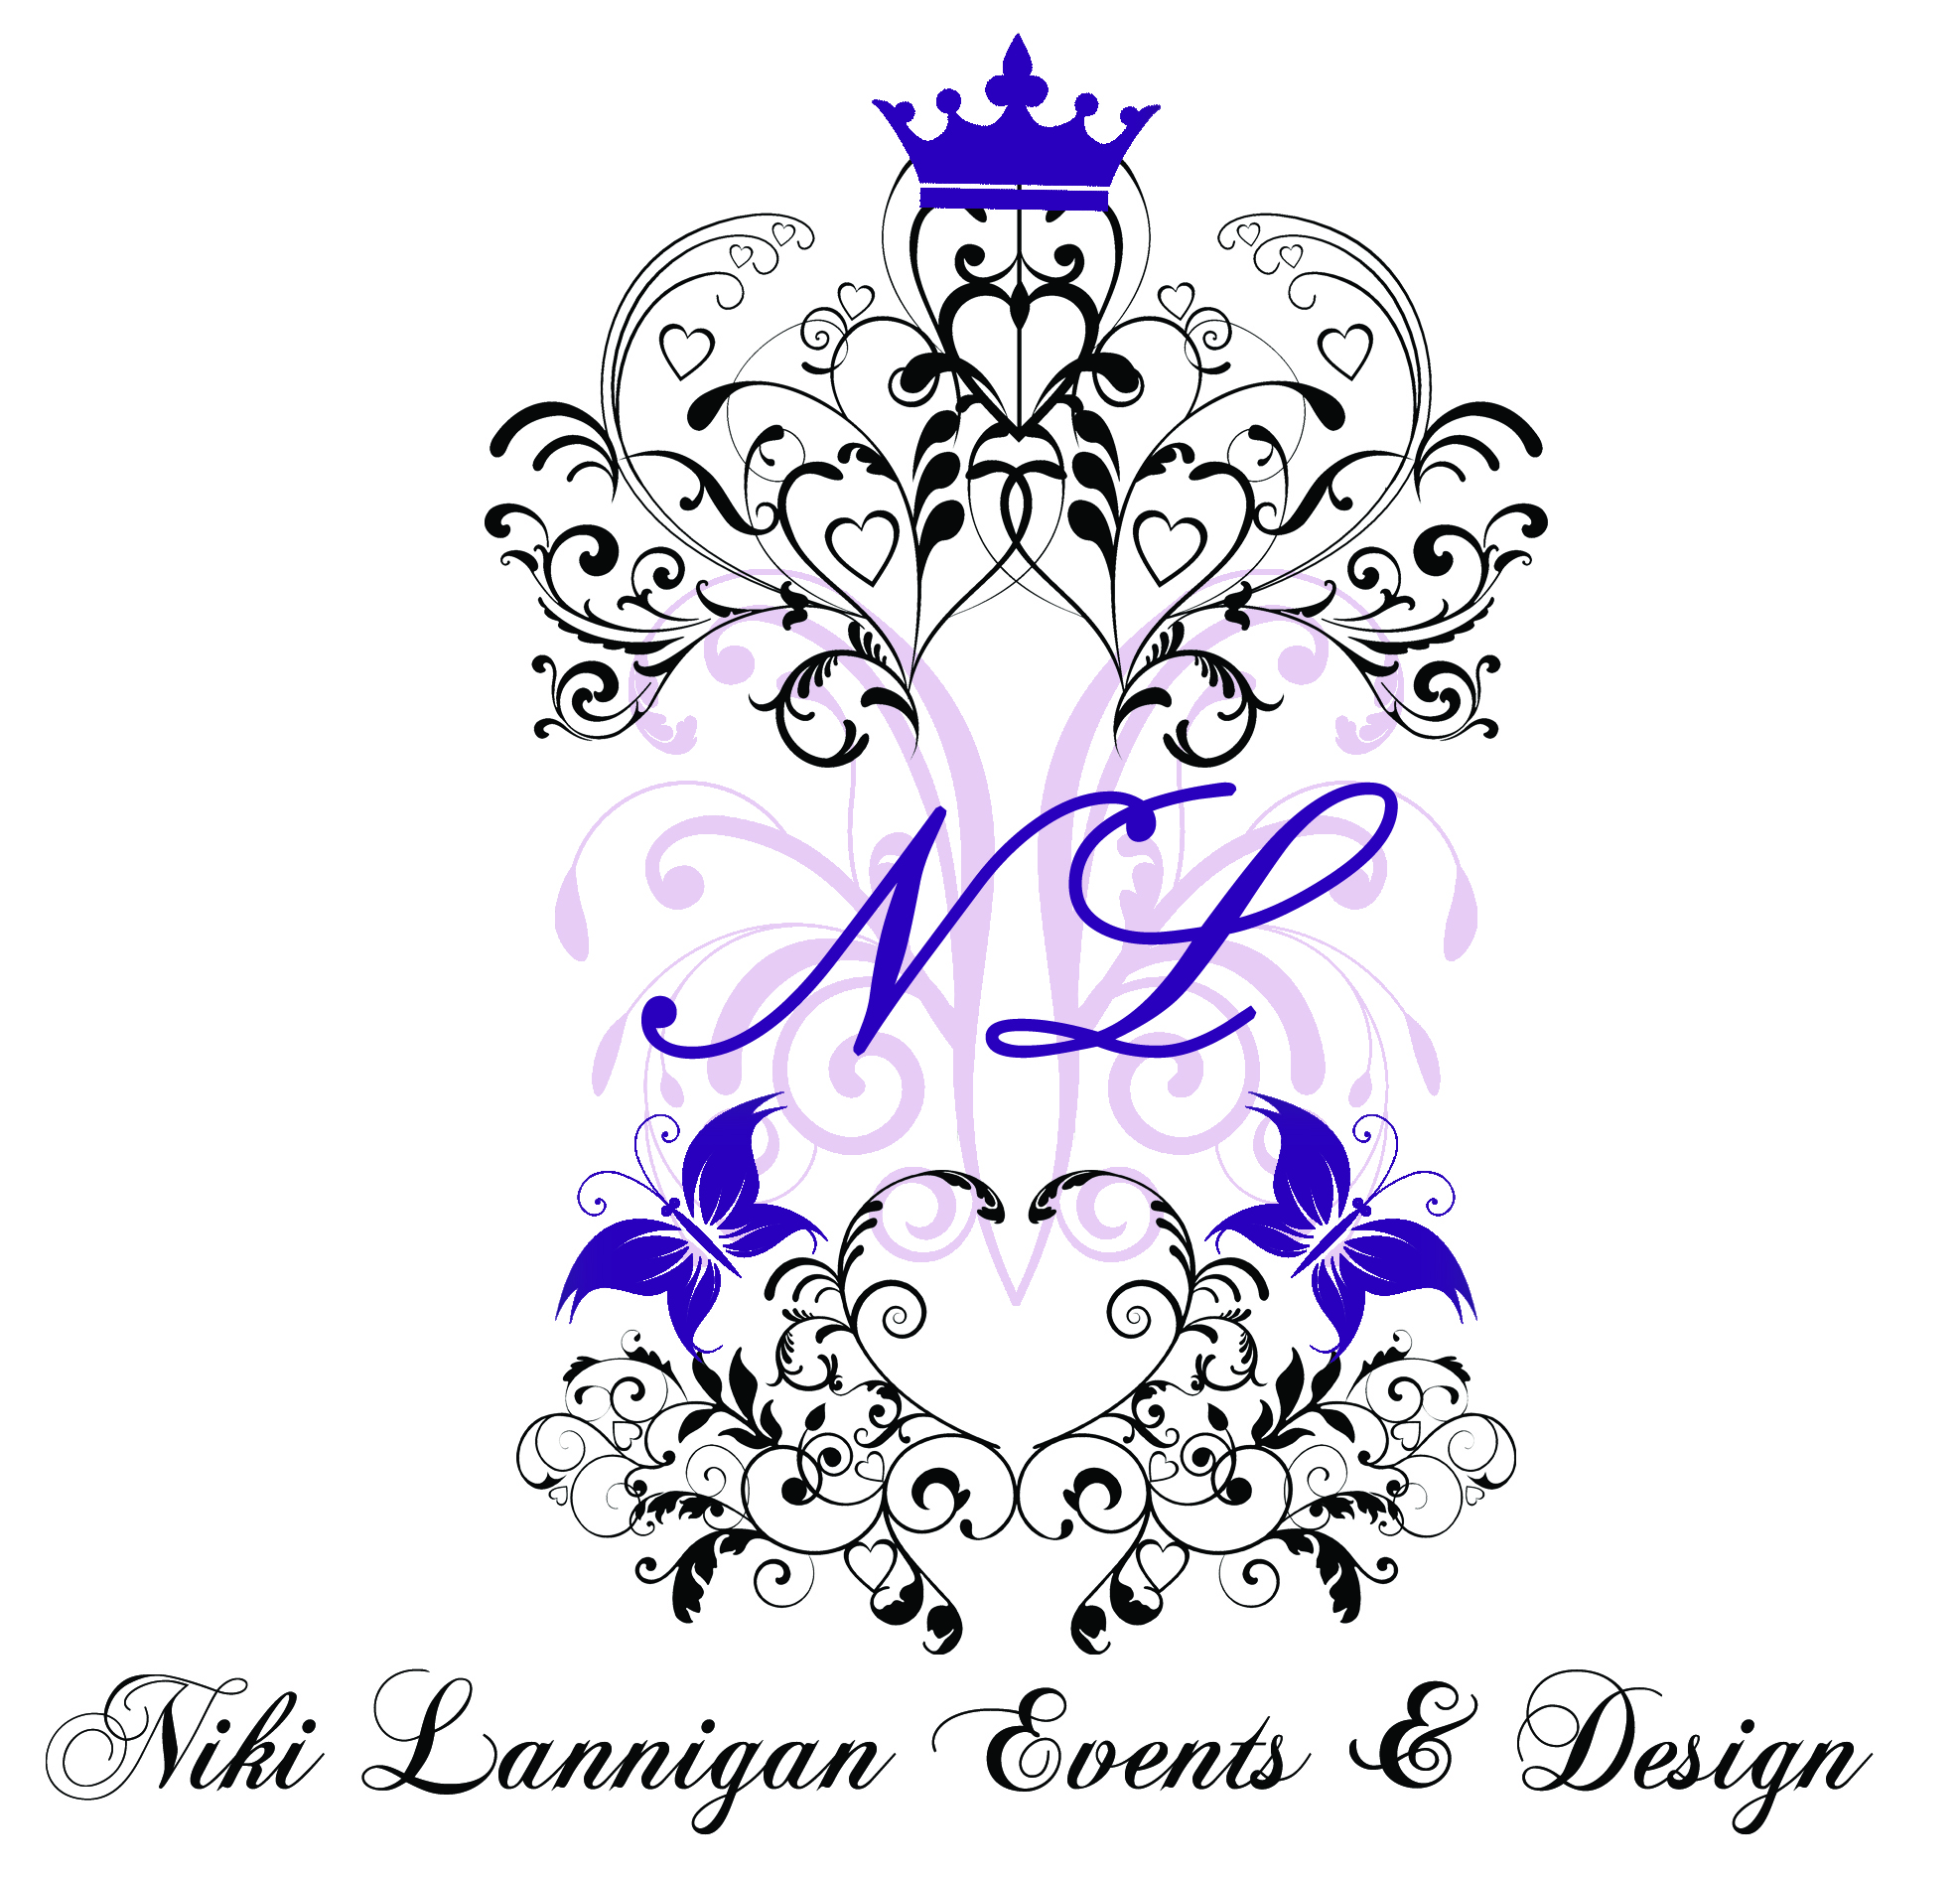 Niki Lannigan Events and Designs